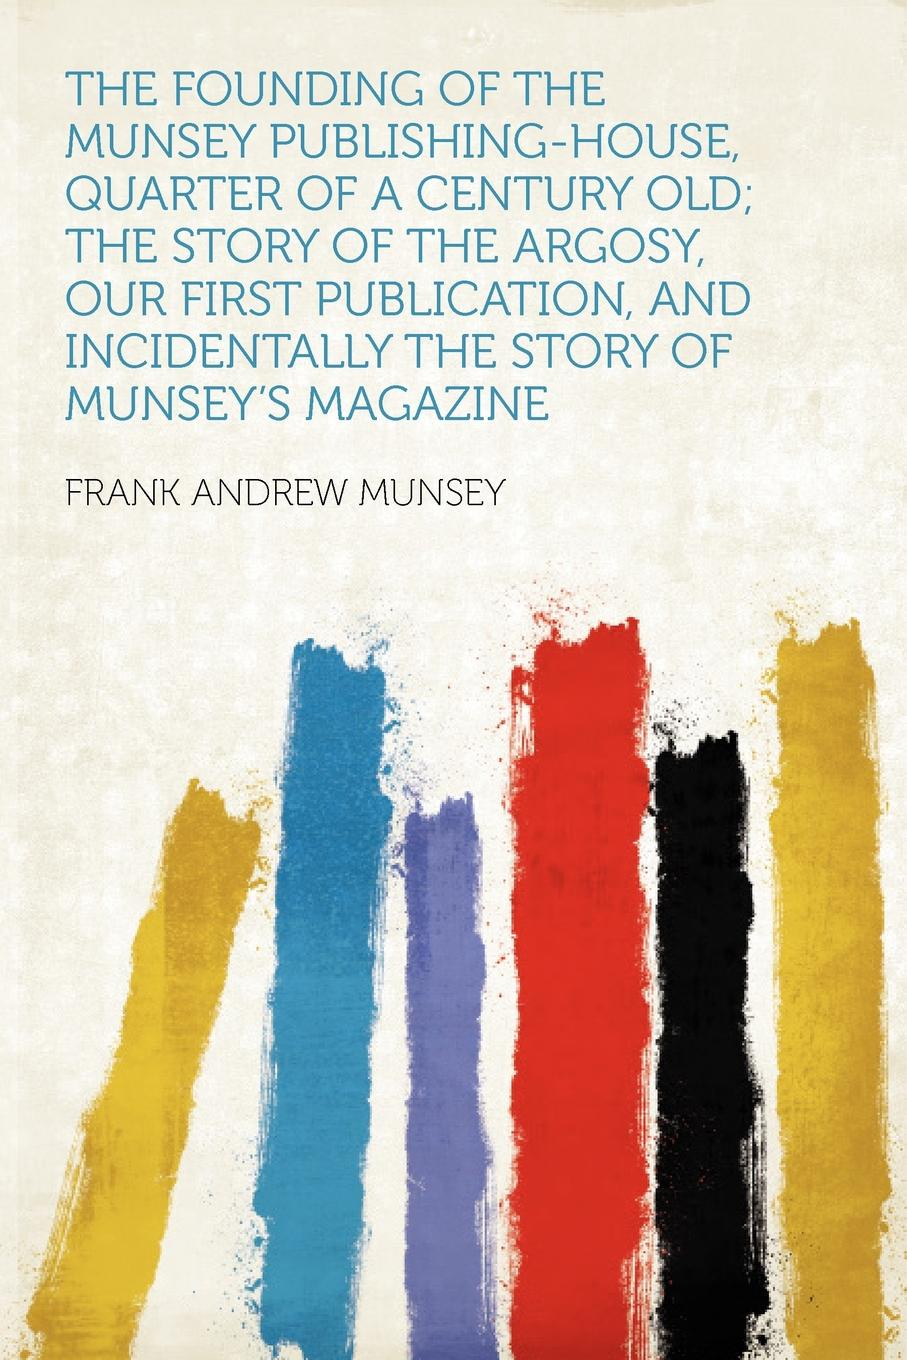 The Founding of the Munsey Publishing-House, Quarter a Century Old; Story Argosy, Our First Publication, and Incidentally M Magazine